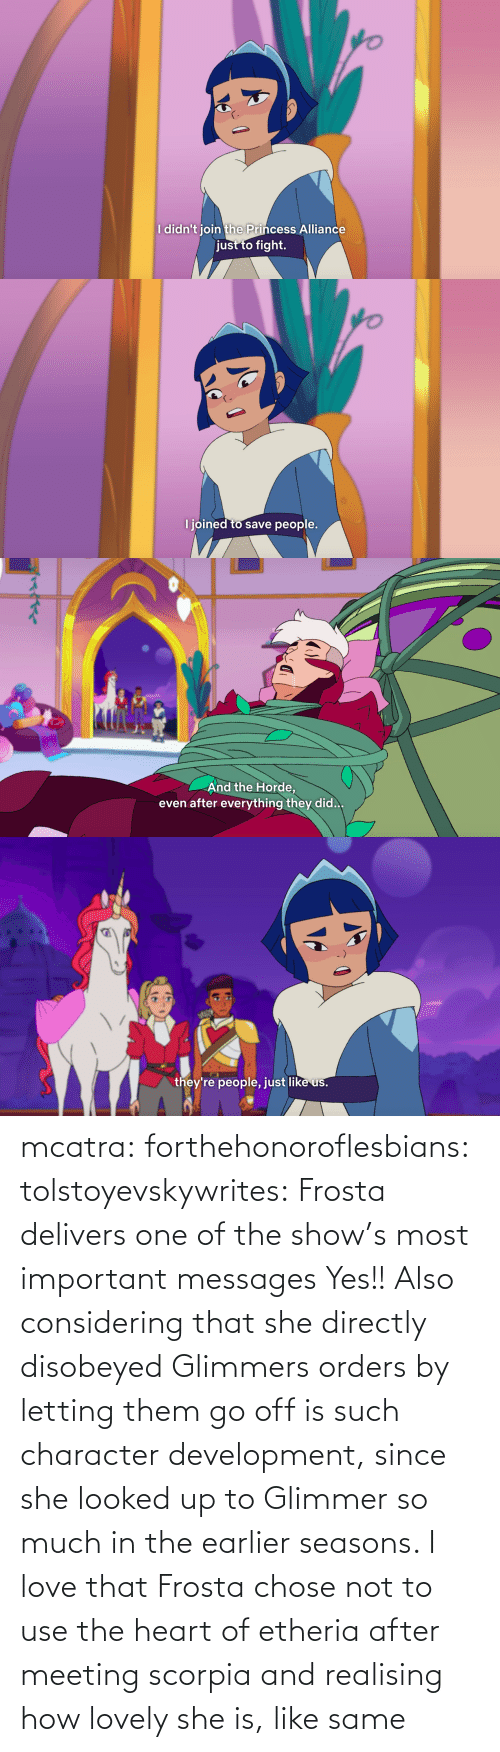 Go Off: mcatra: forthehonoroflesbians:   tolstoyevskywrites:  Frosta delivers one of the show's most important messages  Yes!! Also considering that she directly disobeyed Glimmers orders by letting them go off is such character development, since she looked up to Glimmer so much in the earlier seasons.    I love that Frosta chose not to use the heart of etheria after meeting scorpia and realising how lovely she is, like same